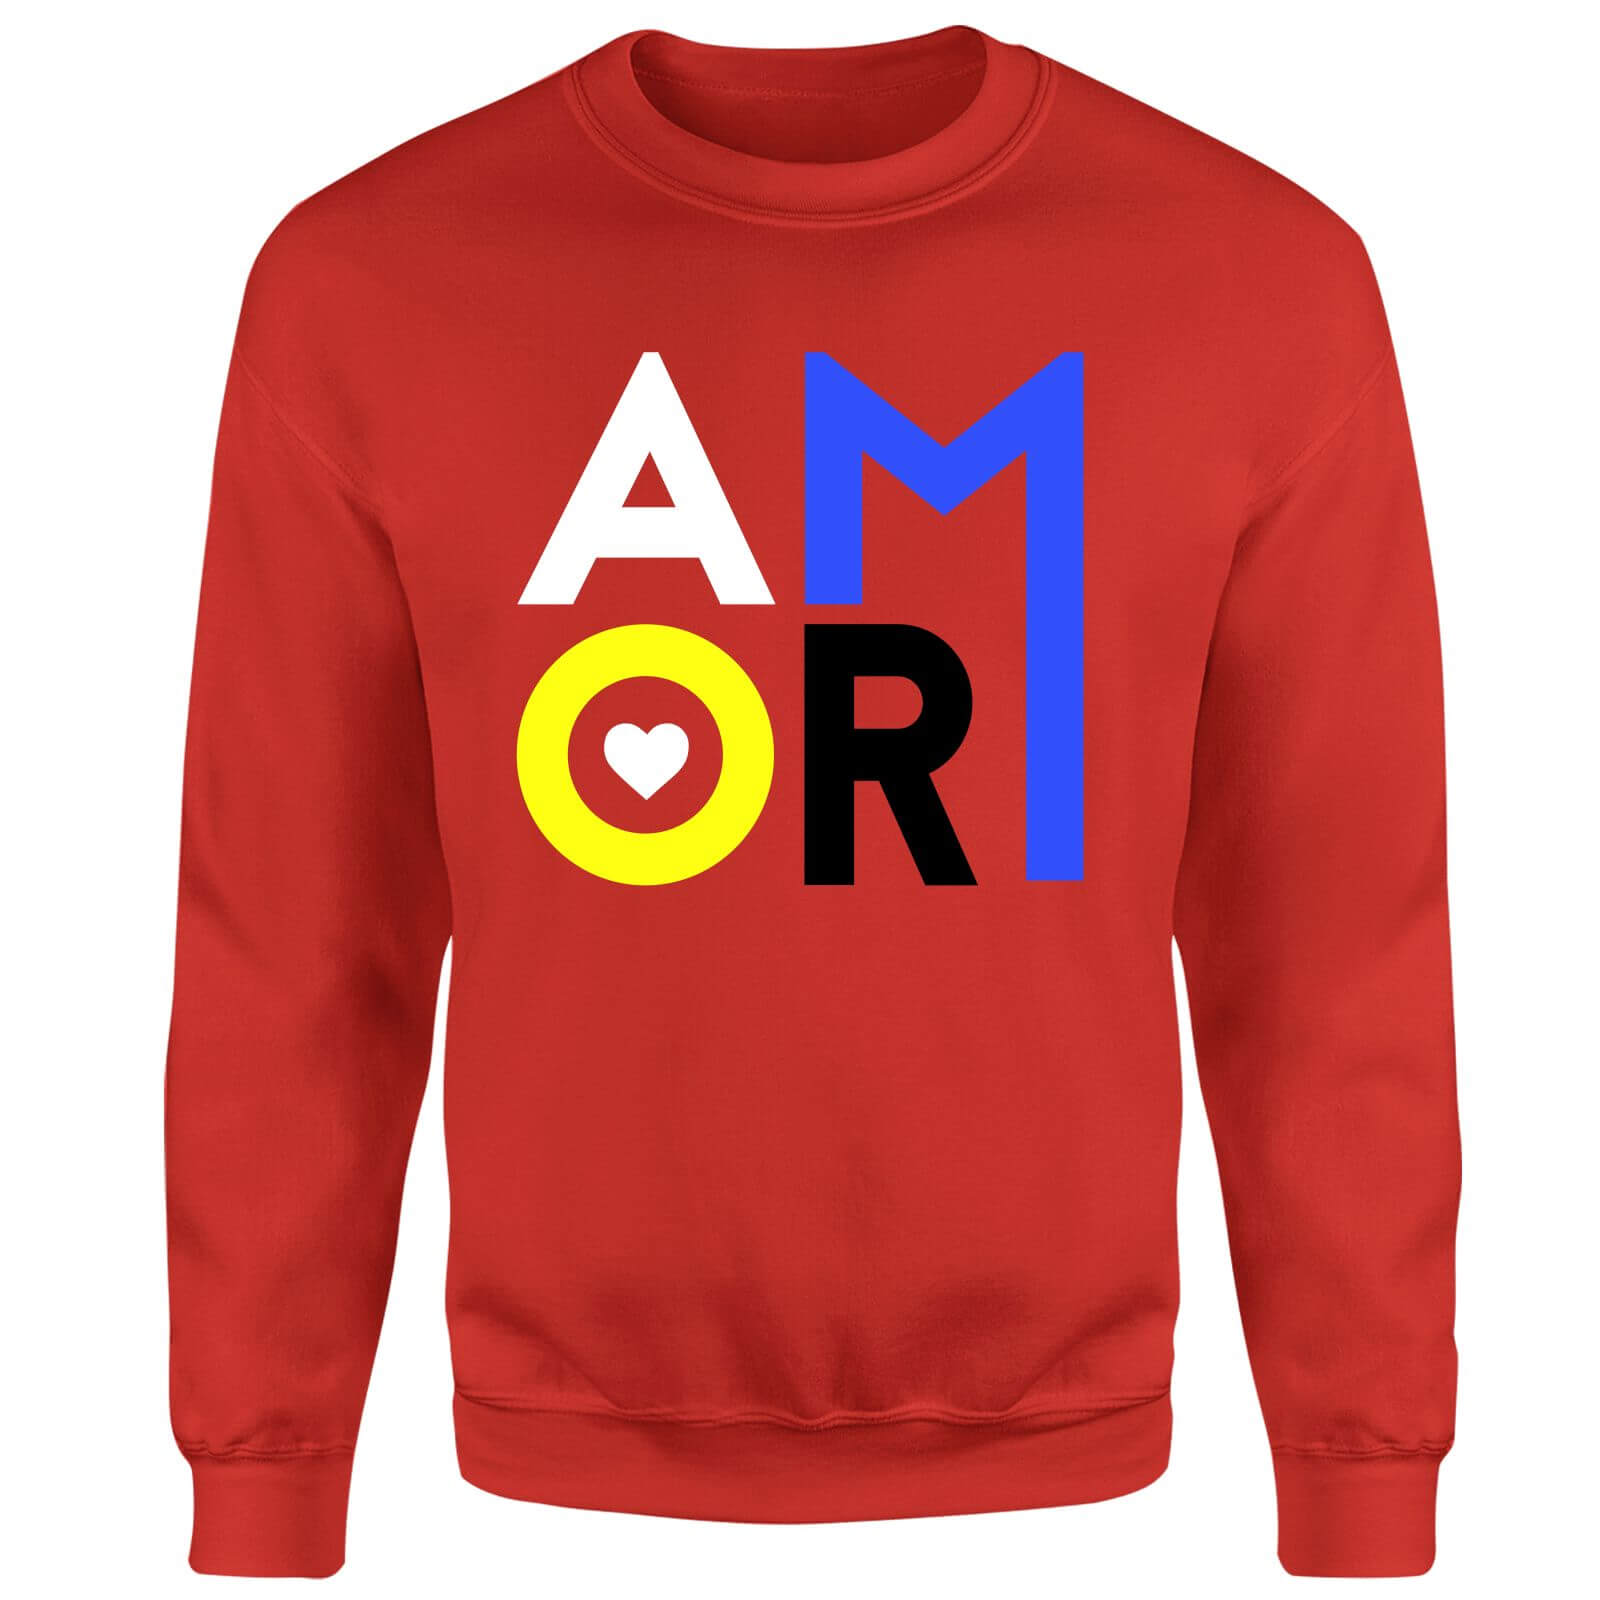 Amor Sweatshirt - Red